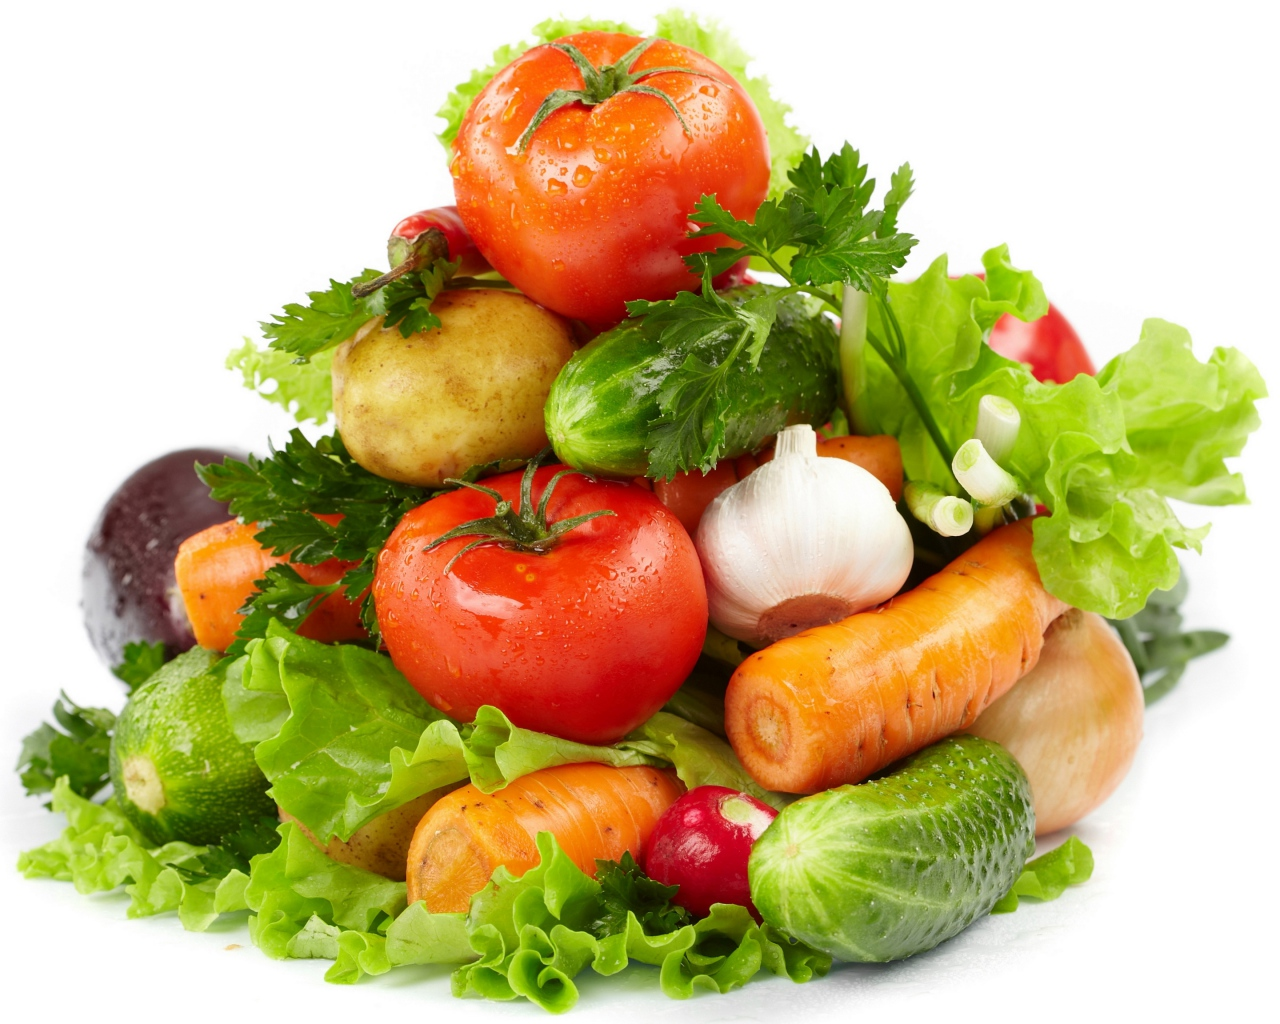 vegetables_healthy_many_assorted_89651_1280x1024